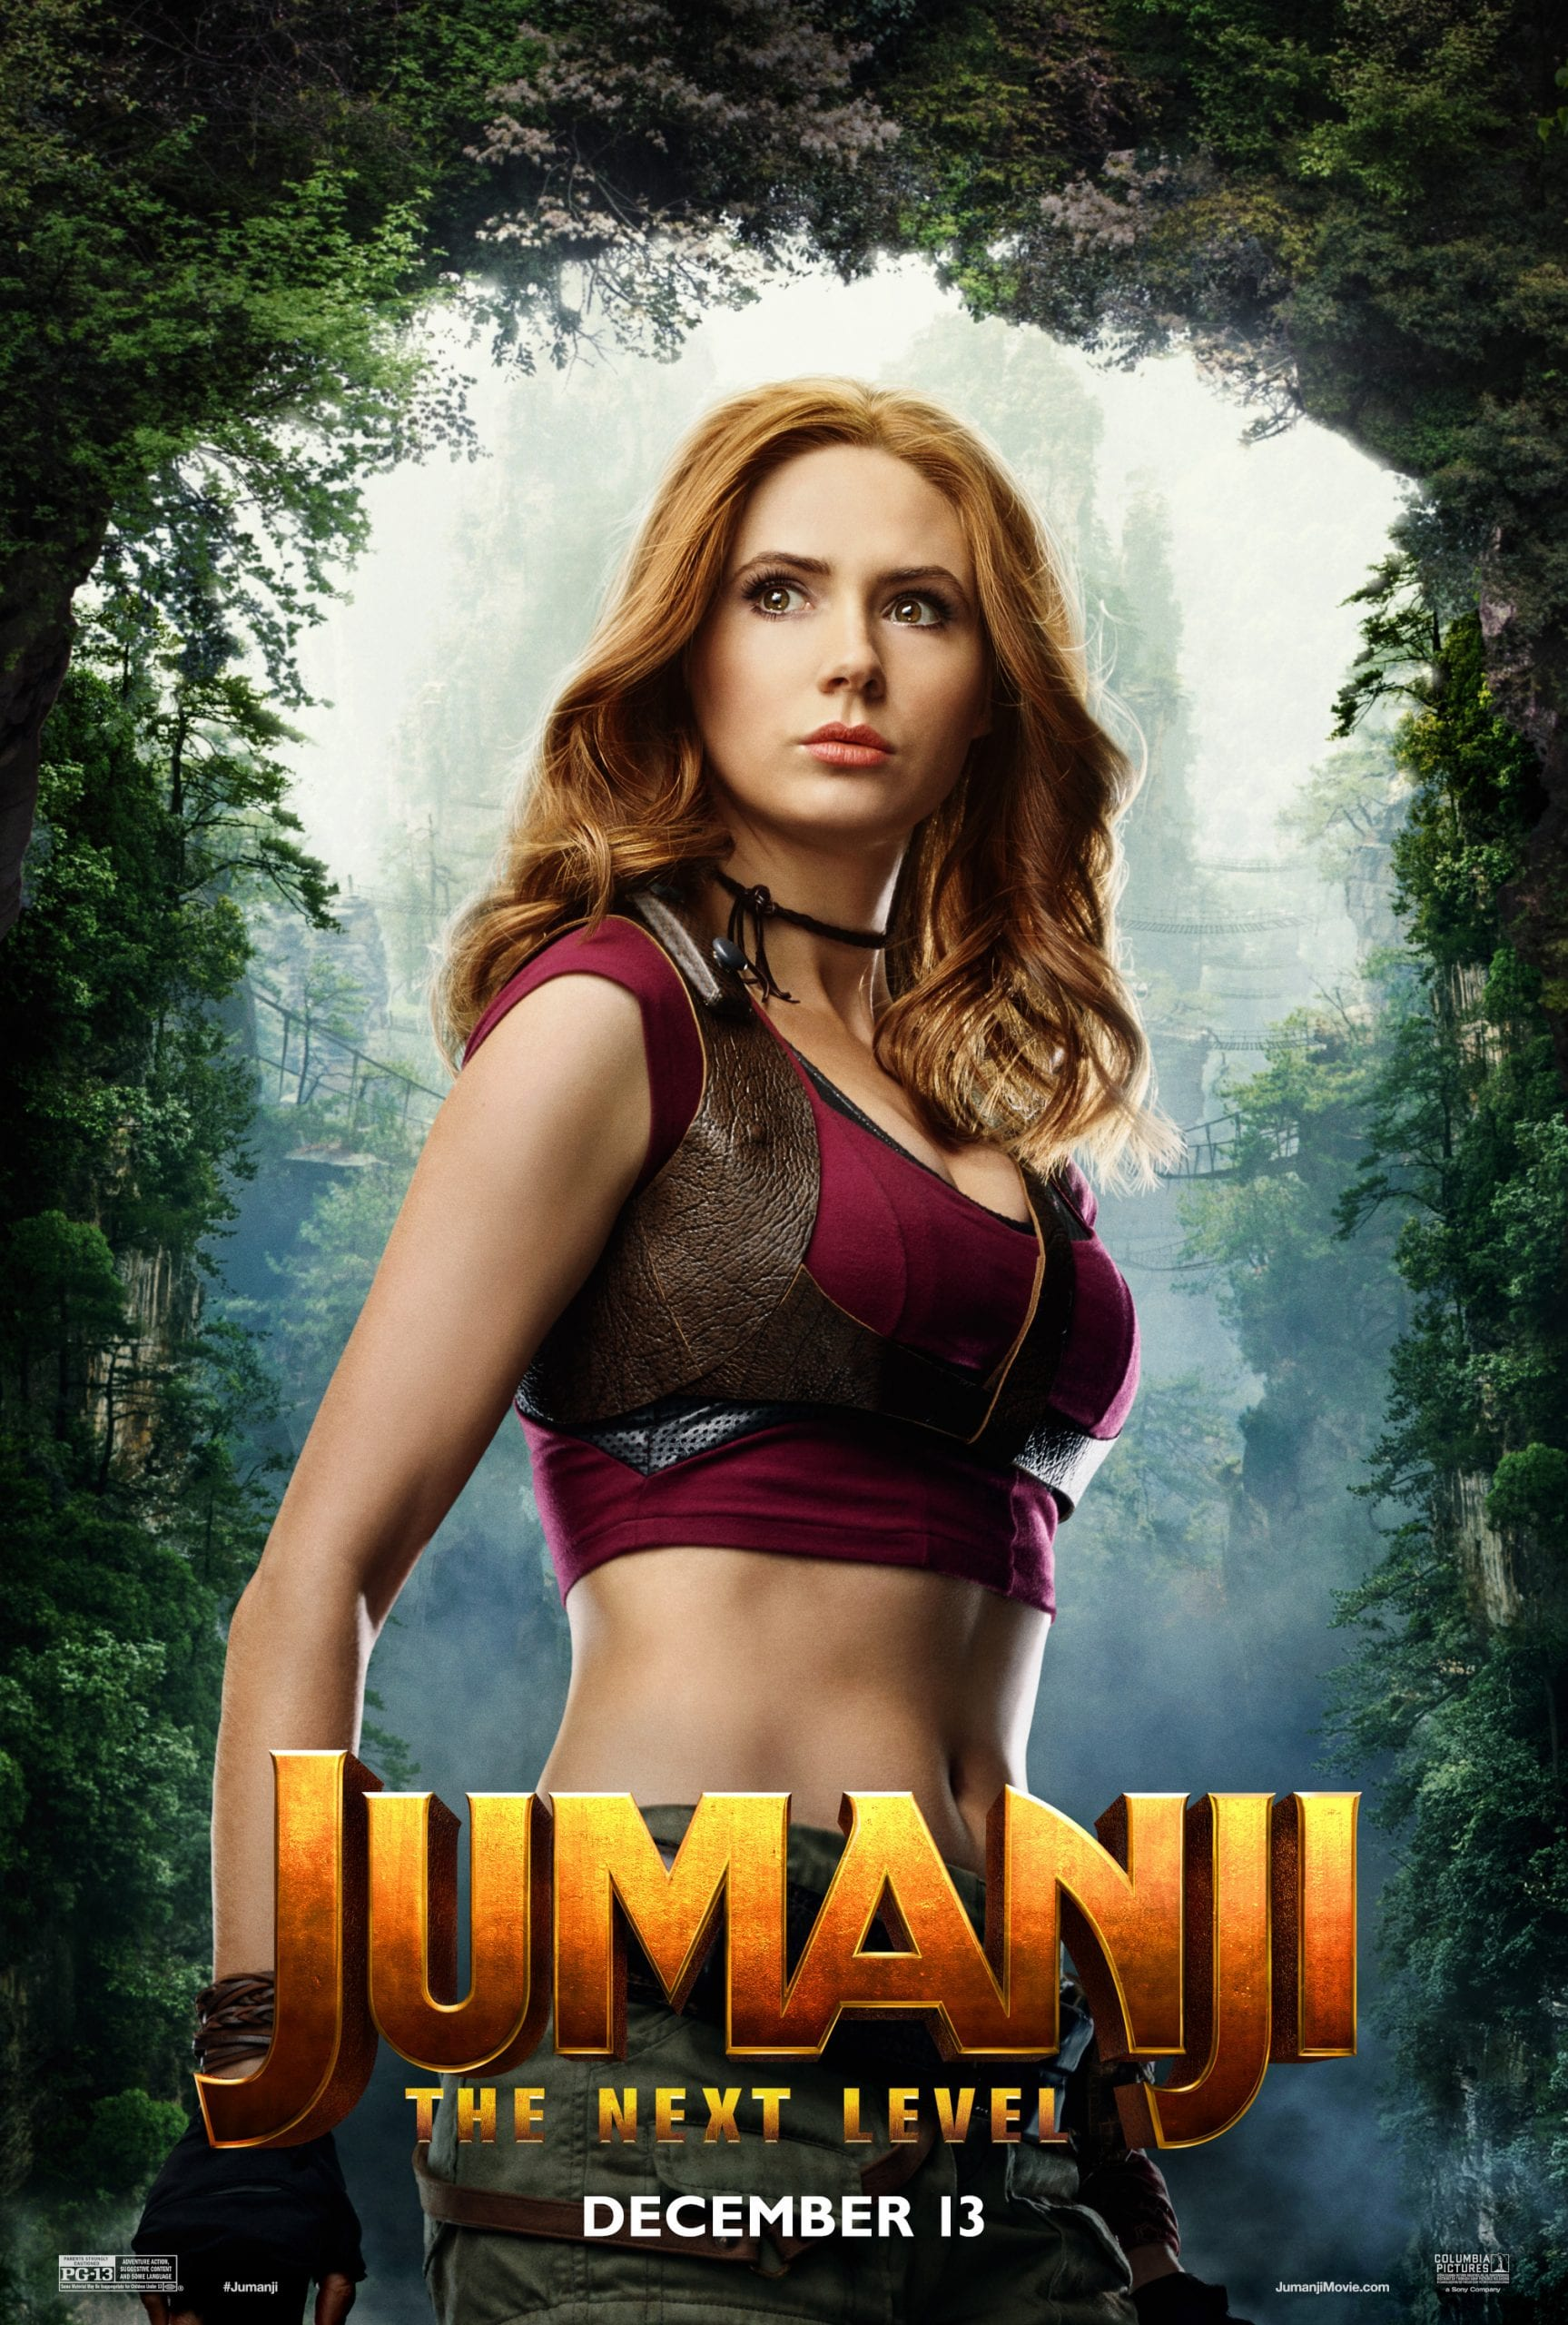 Jumanji The Next Level Character Posters Karen Gillan as Ruby Roundhouse